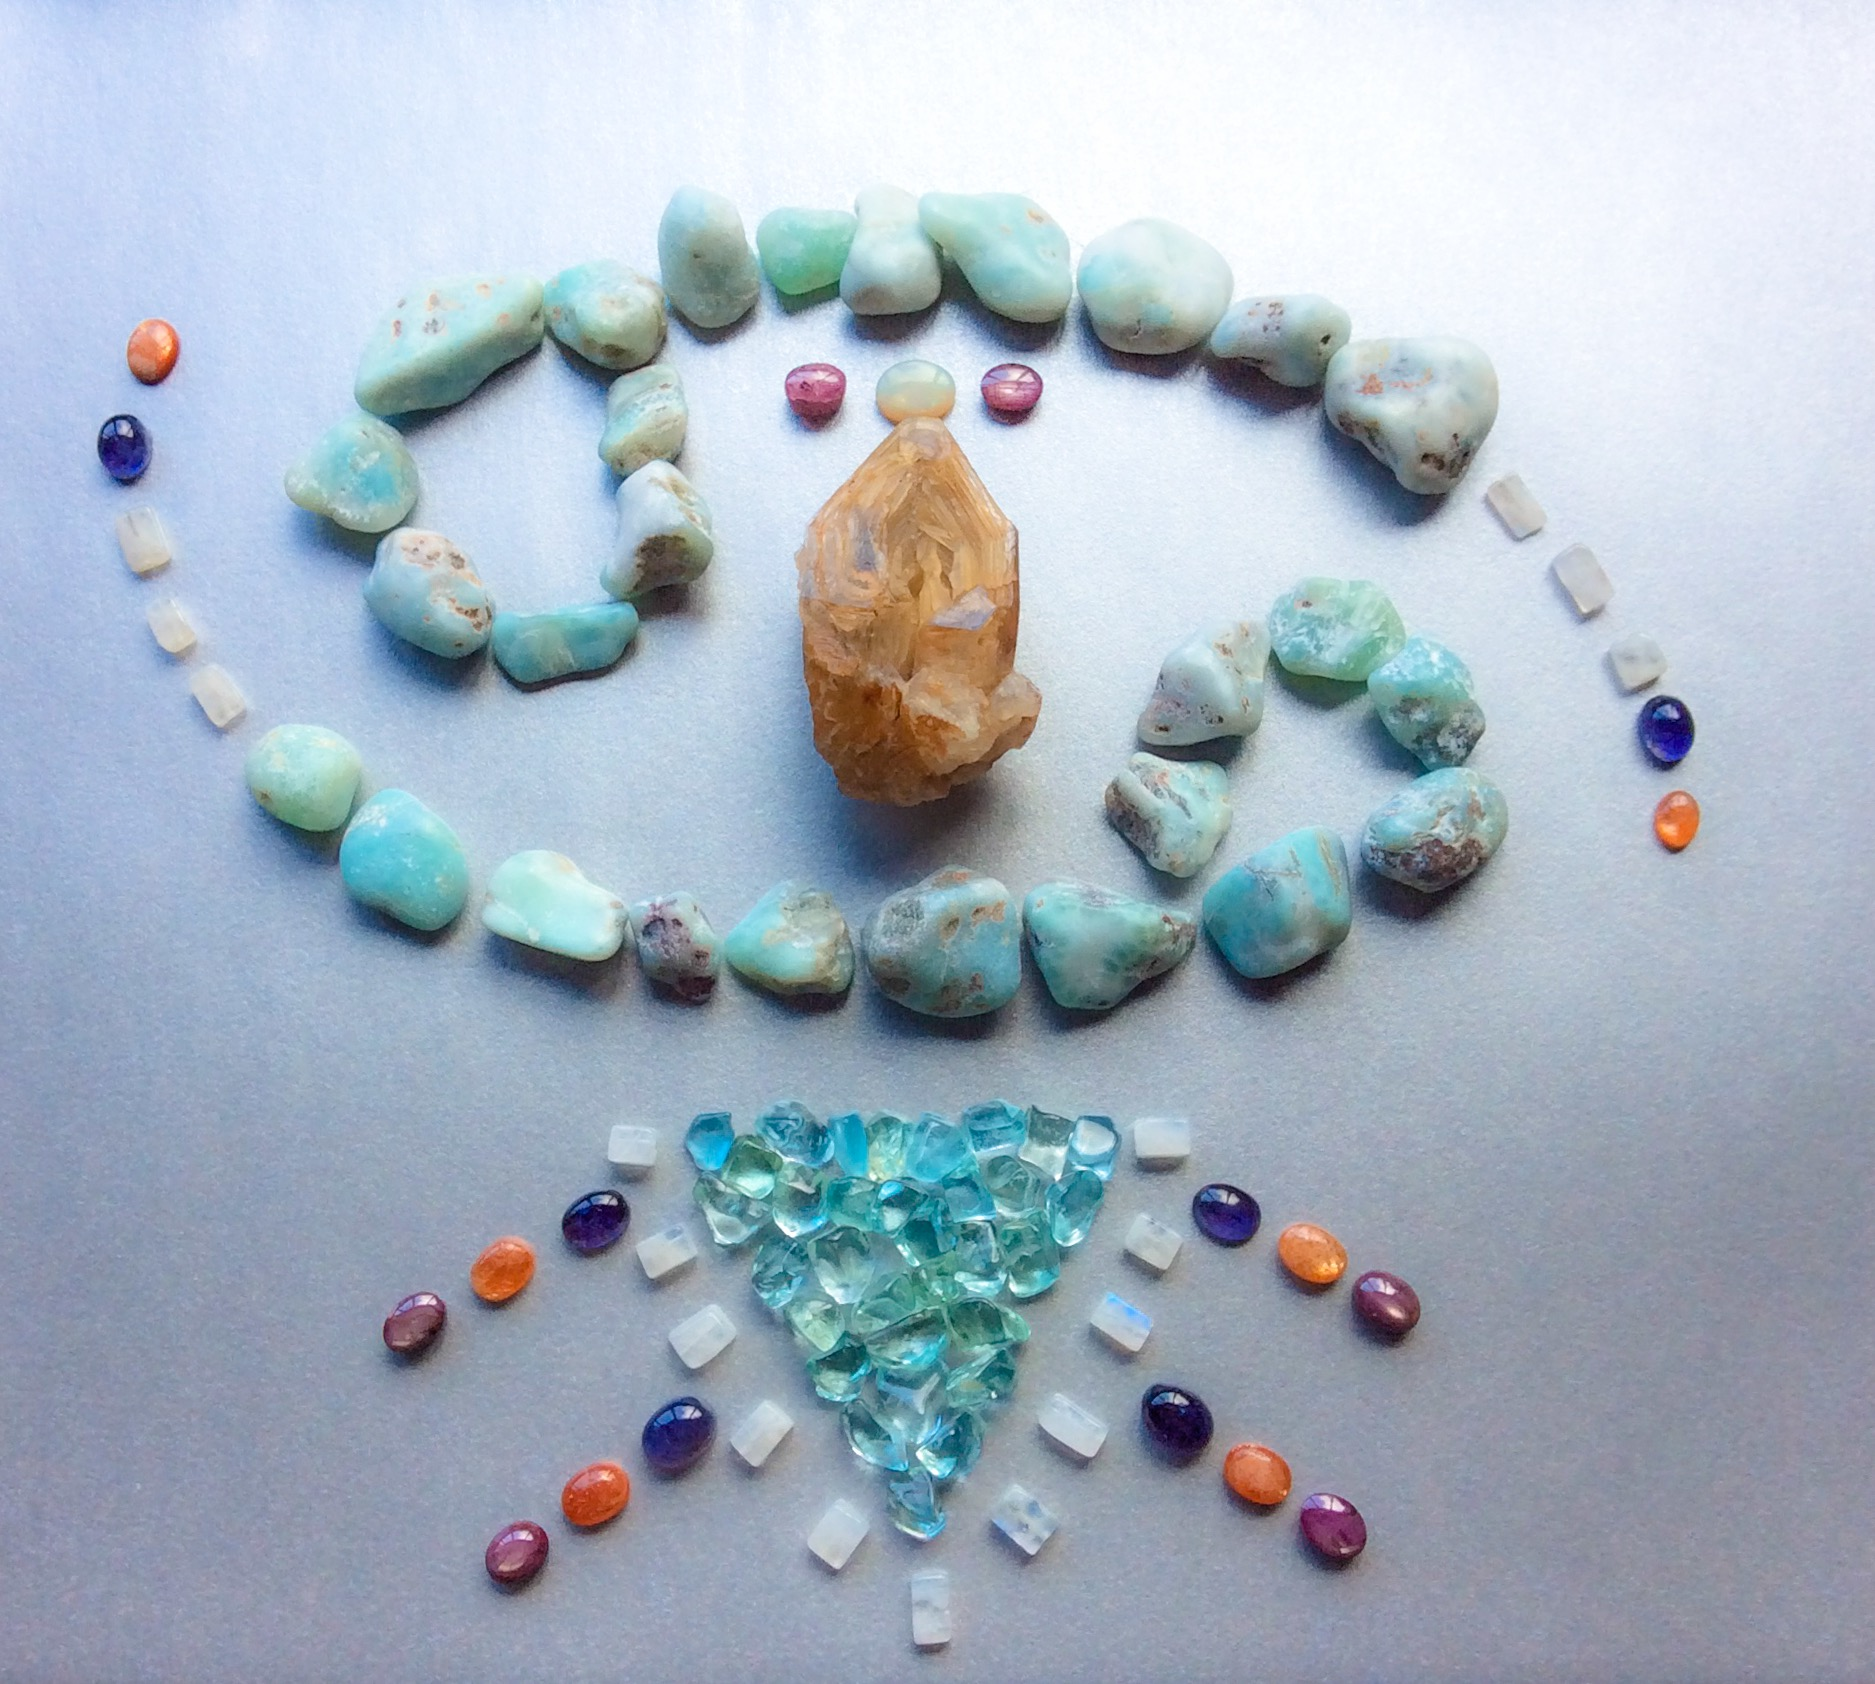 Fenster Elestial Lightkeeper Quartz, Opal, Star Ruby, Larimar, Aquamarine, Moonstone, Iolite and Sunstone